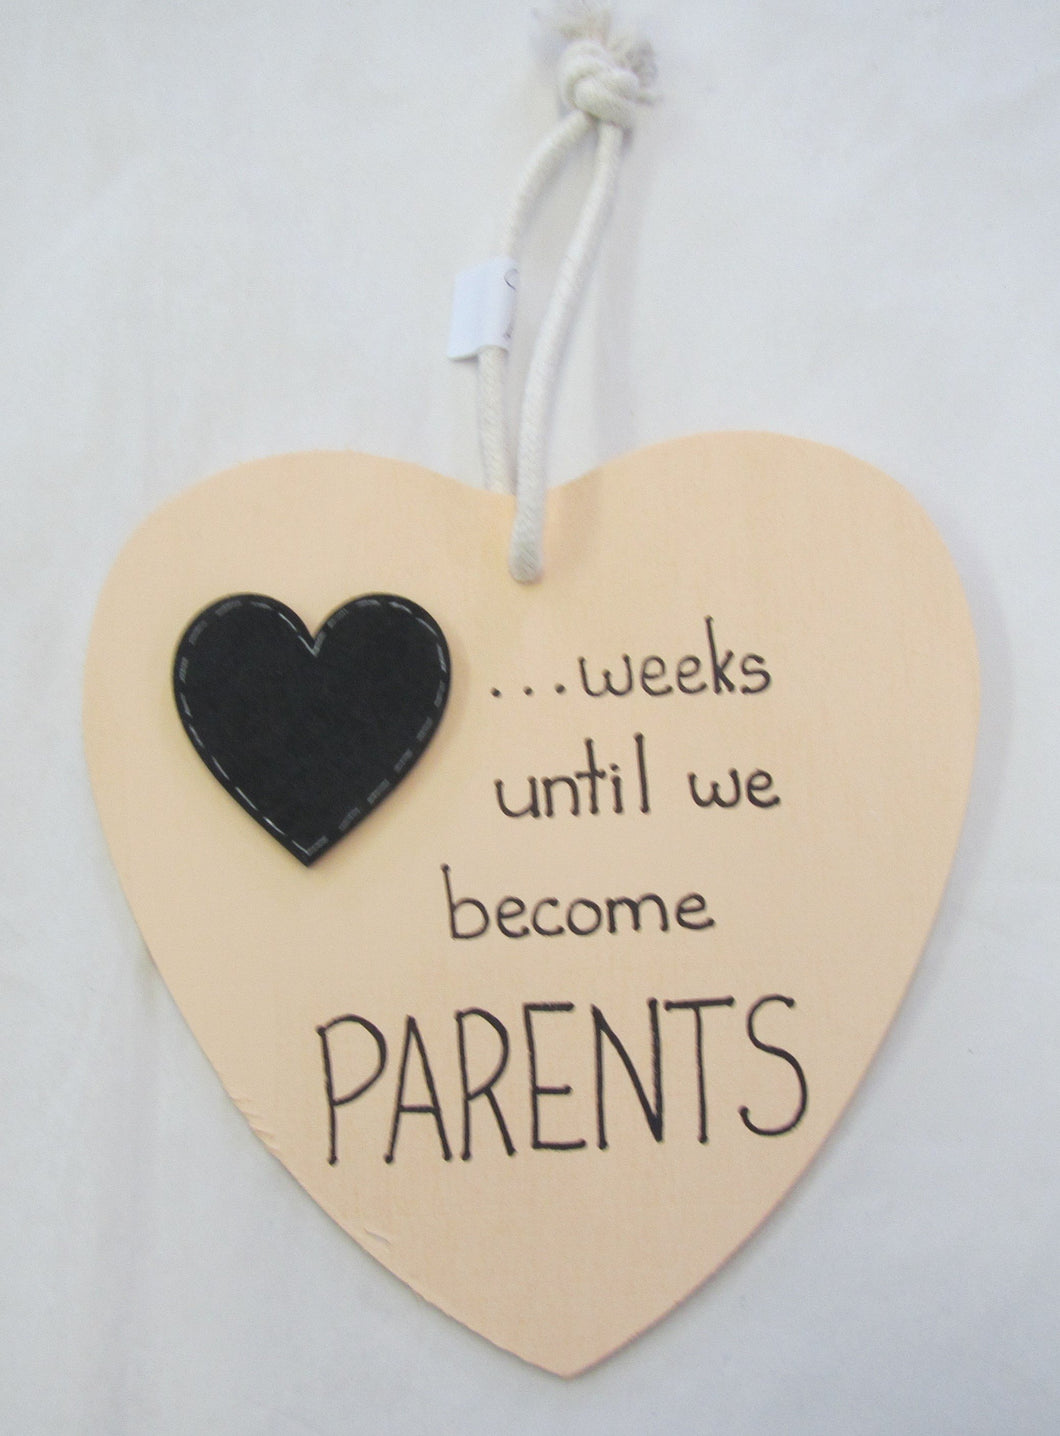 Beautiful handcrafted heart - weeks until we become parents